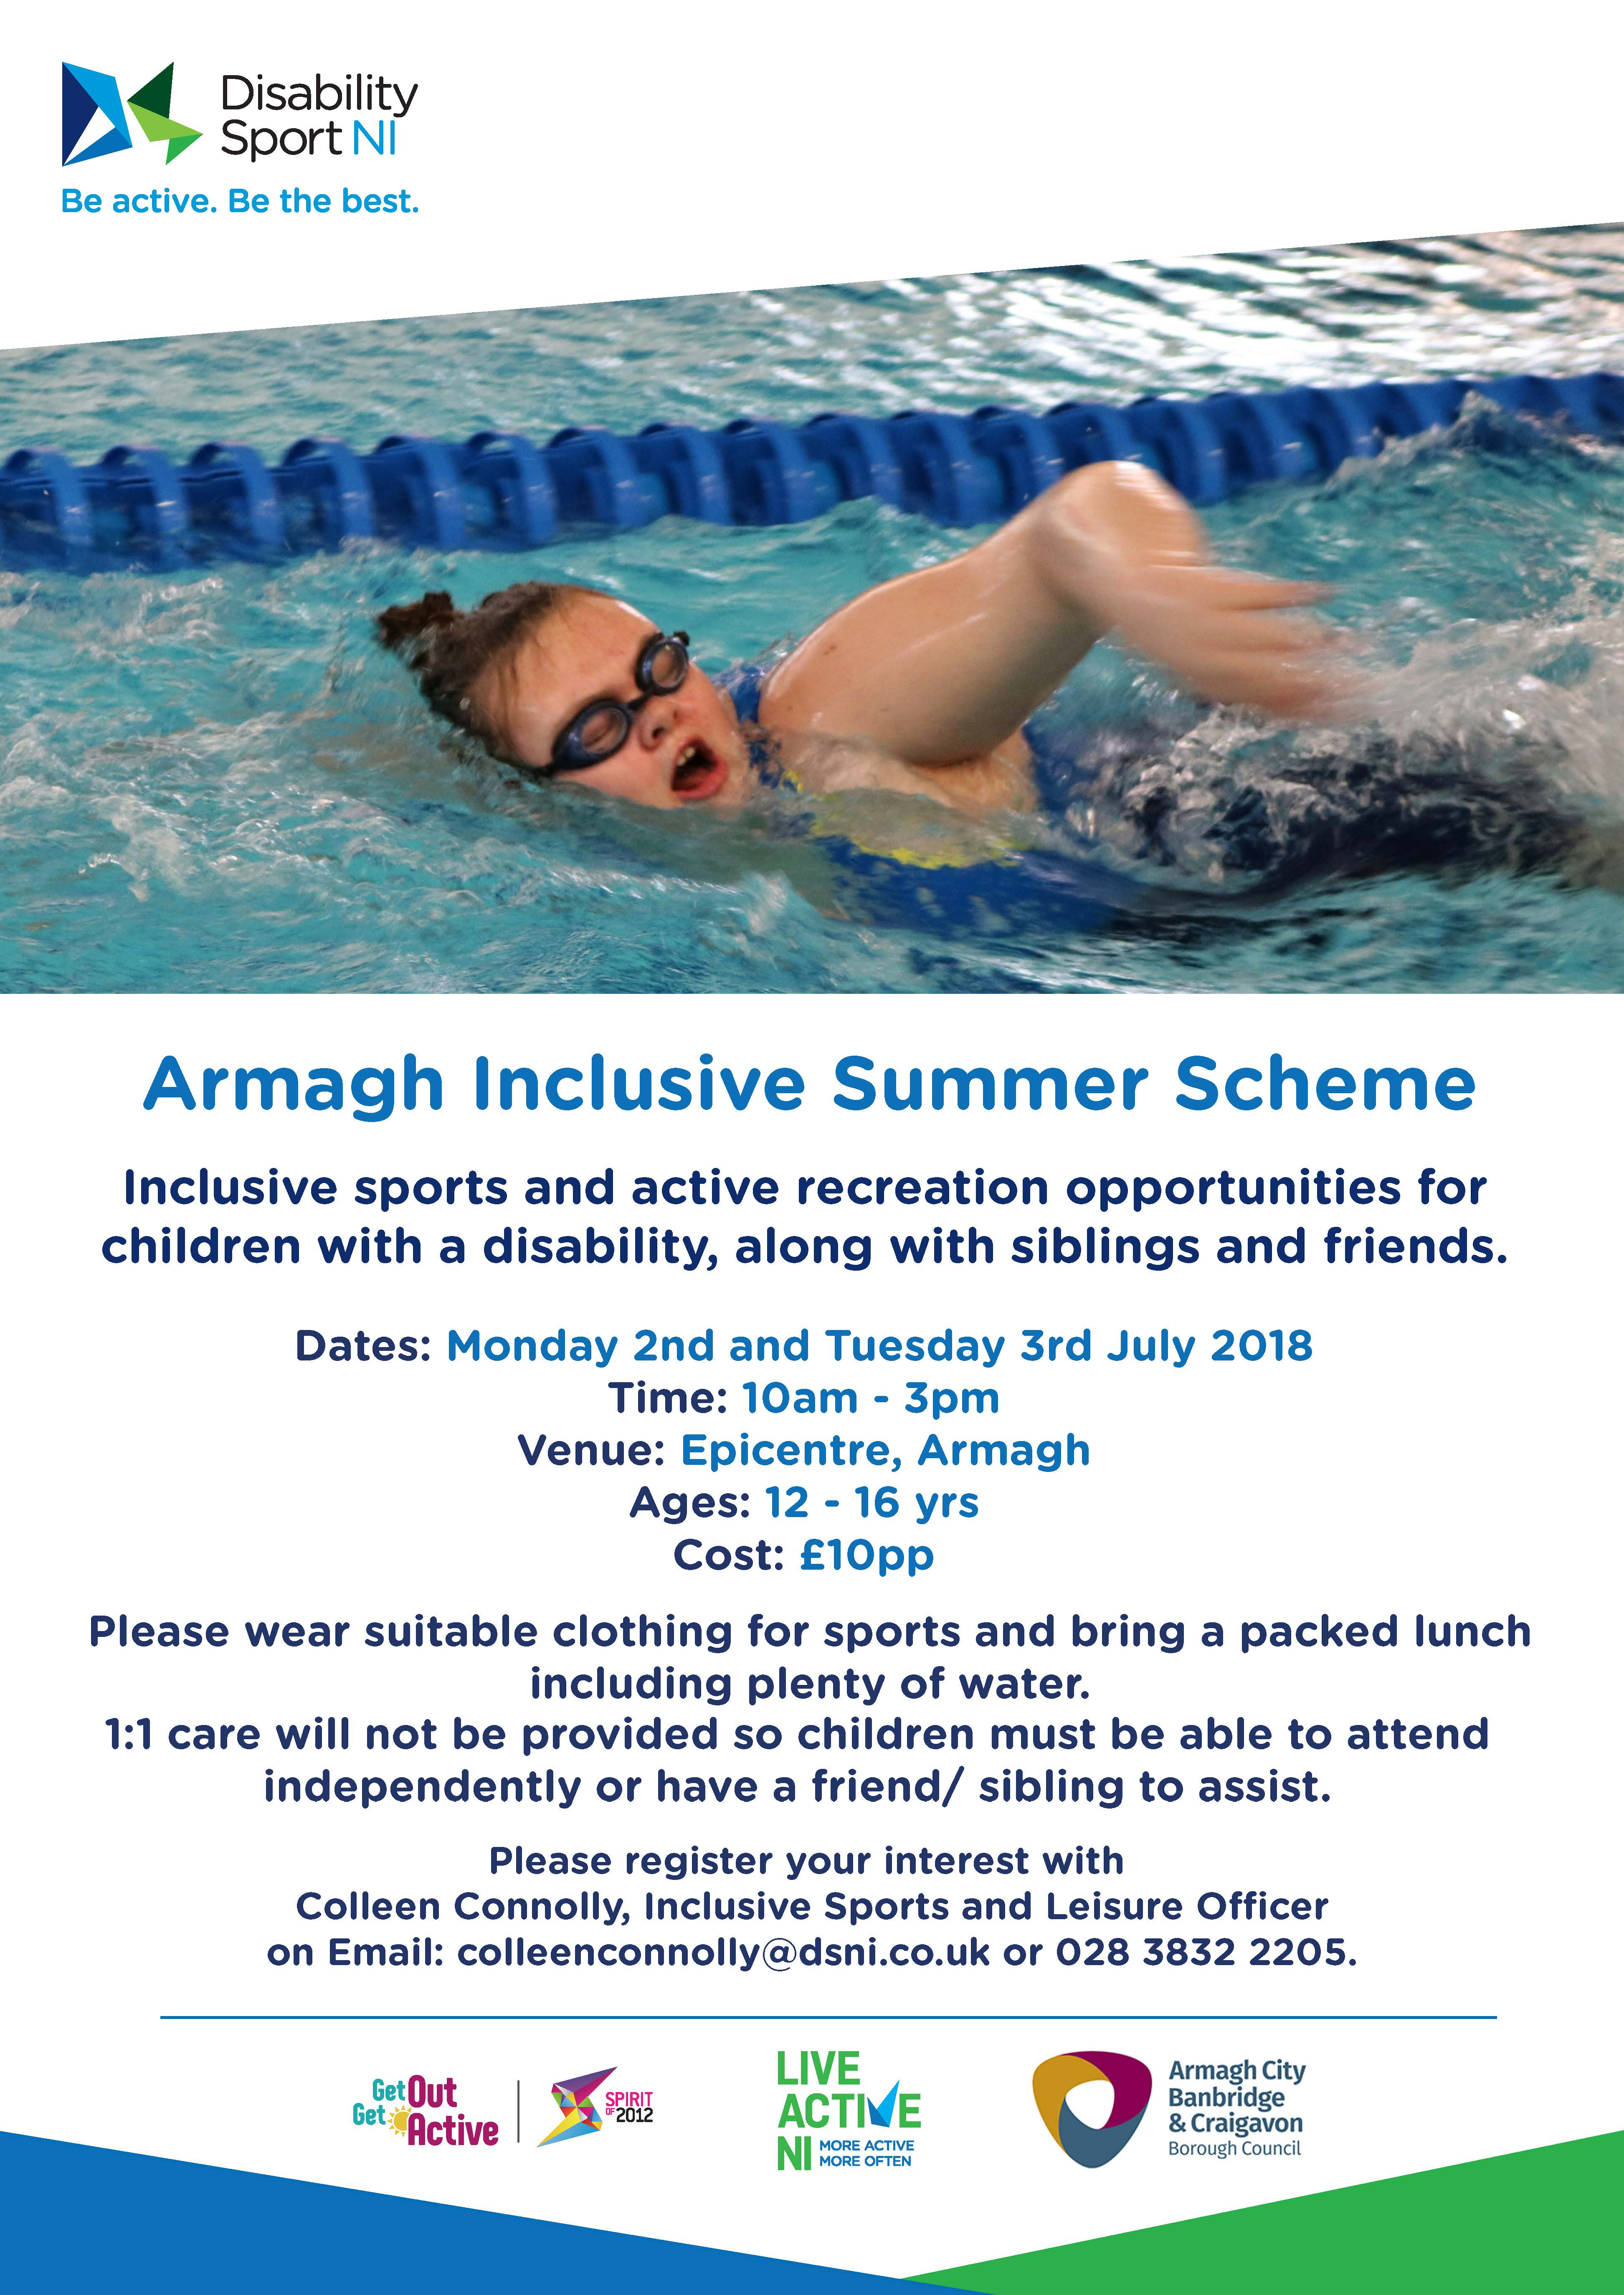 A flyer of the Armagh Inclusive Summer Scheme